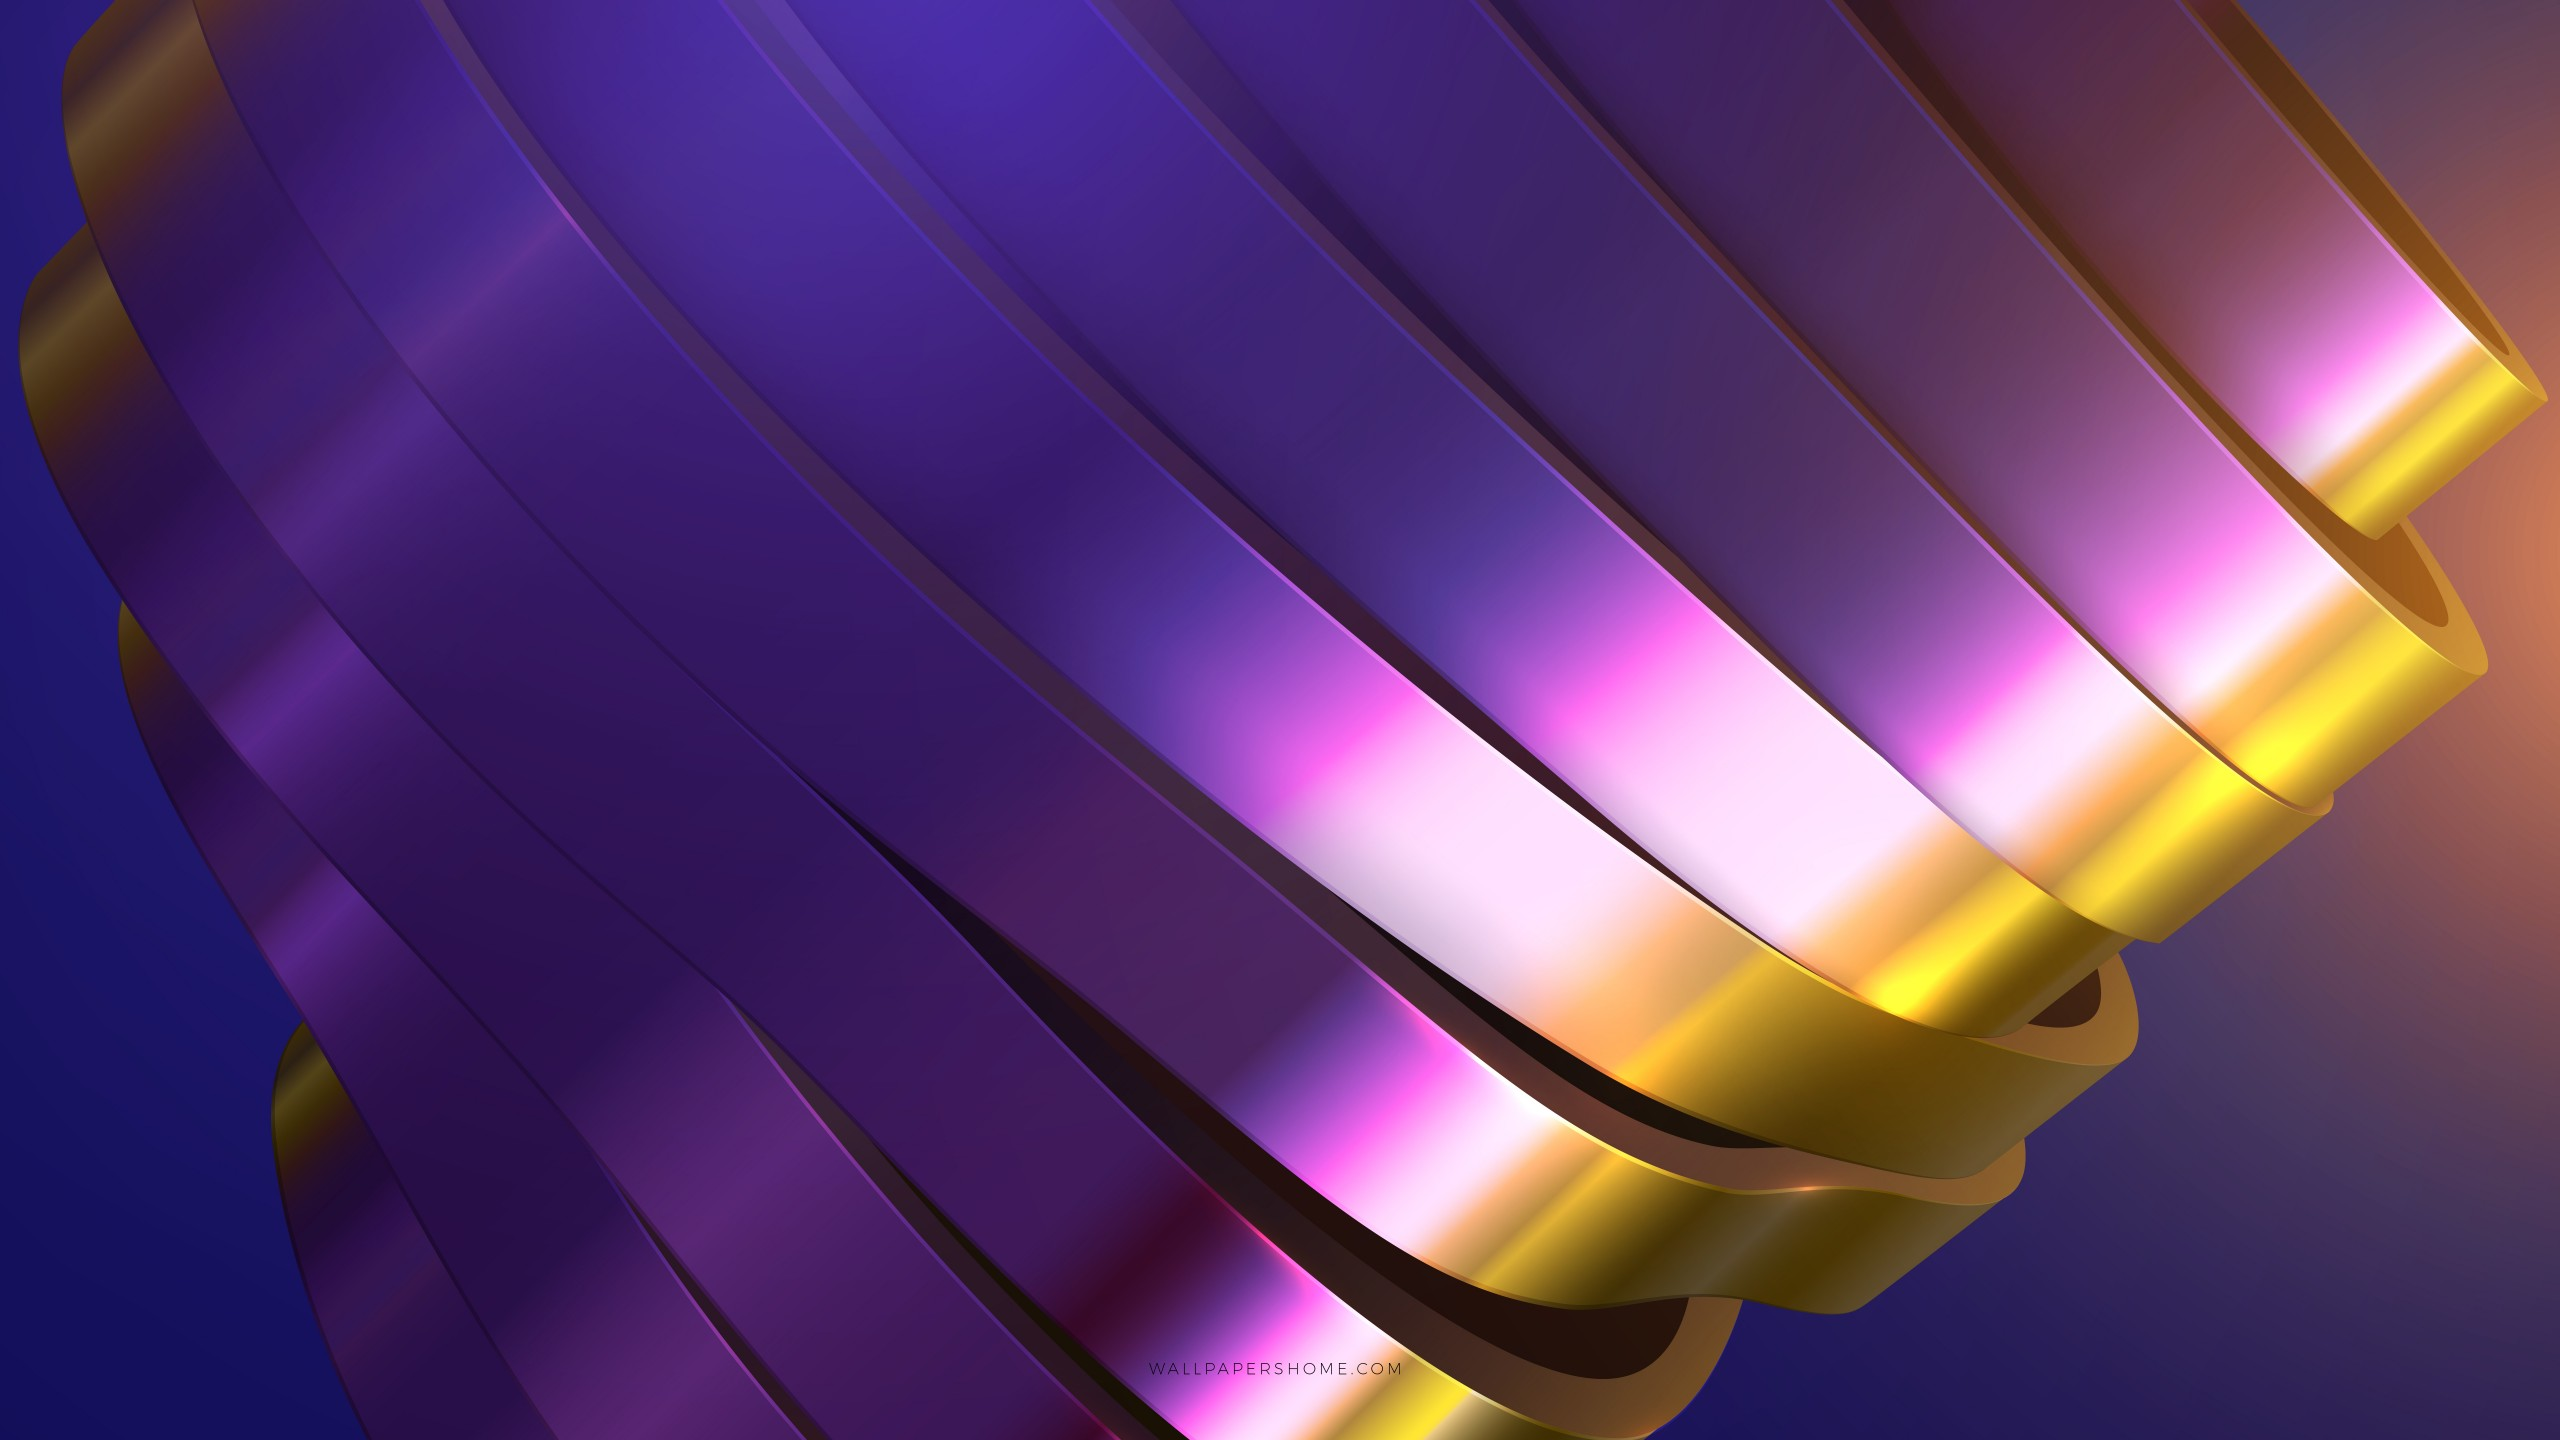 Wallpaper abstract, 3D, colorful, 8k, Abstract #21475